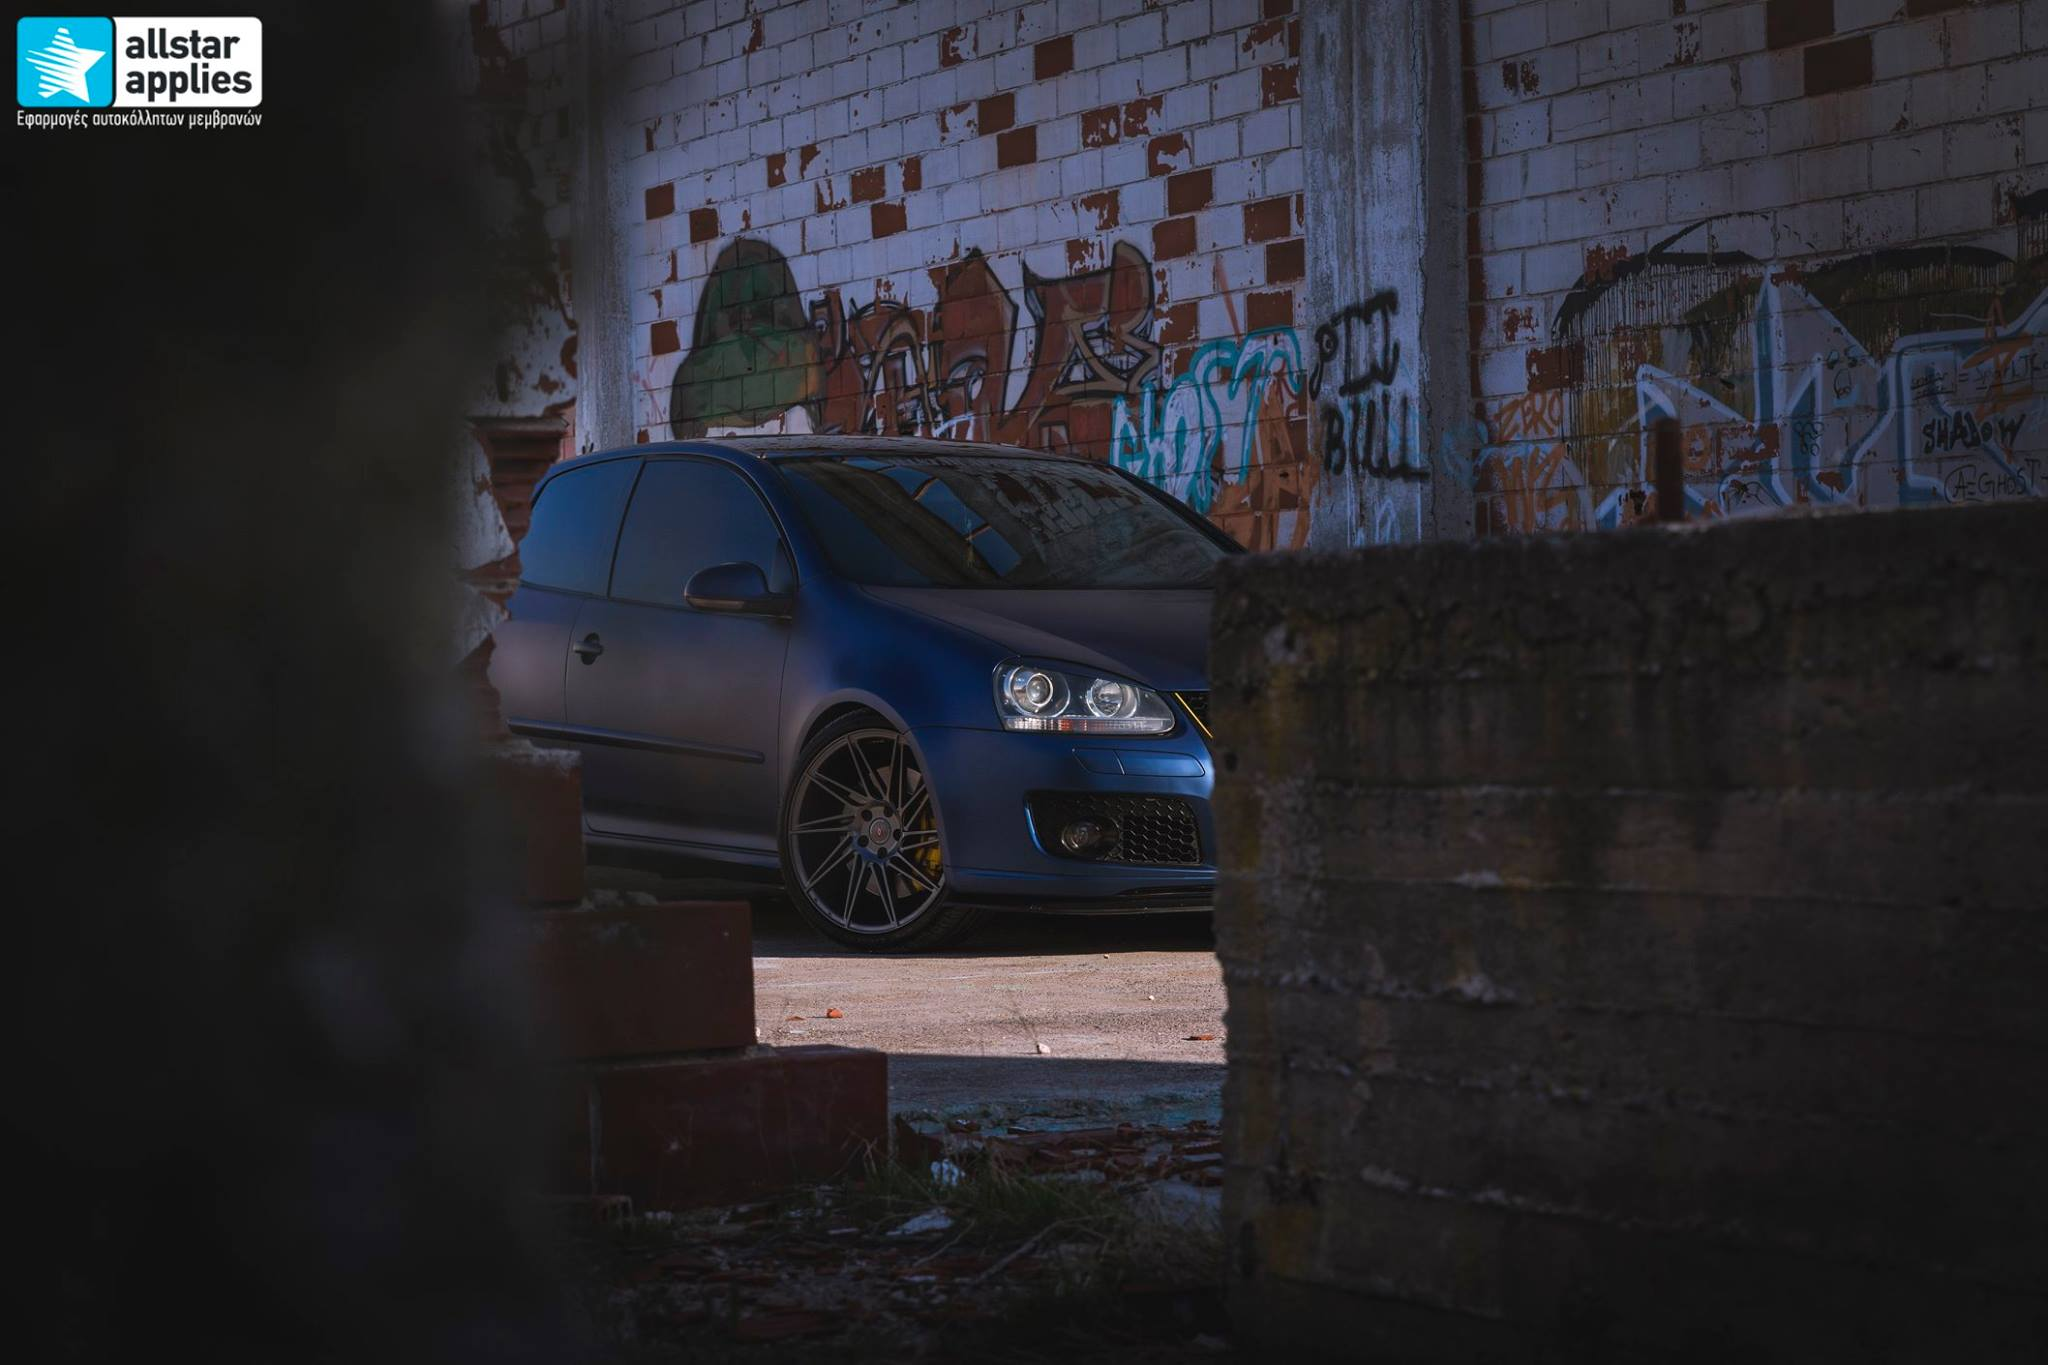 VW Golf 5 - Matt Trenton Blue (13)